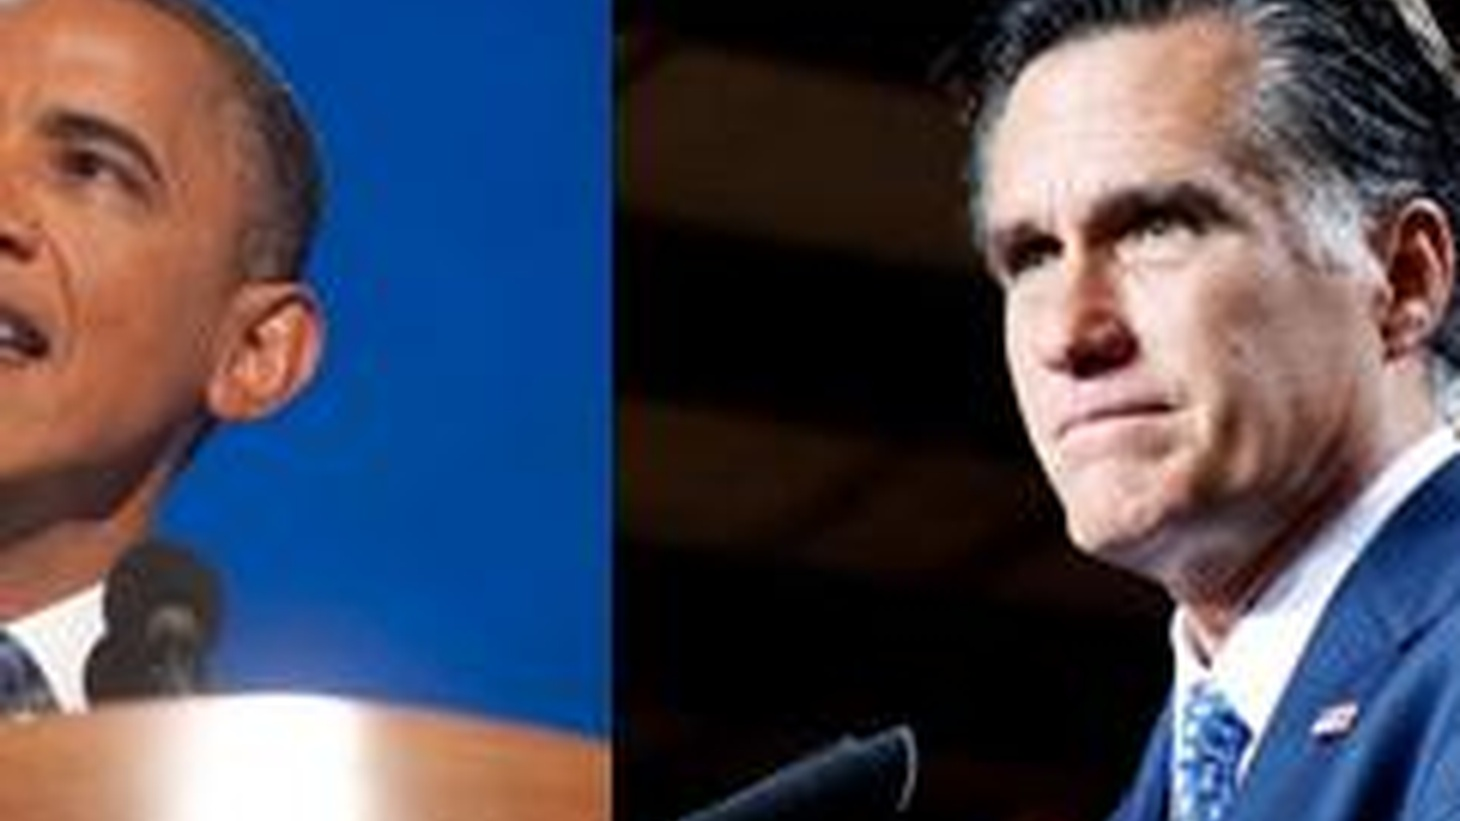 President Barack Obama and former Massachusetts Governor Mitt Romney face off in a town hall forum, Tuesday, October 16, 6-8pm PDT.